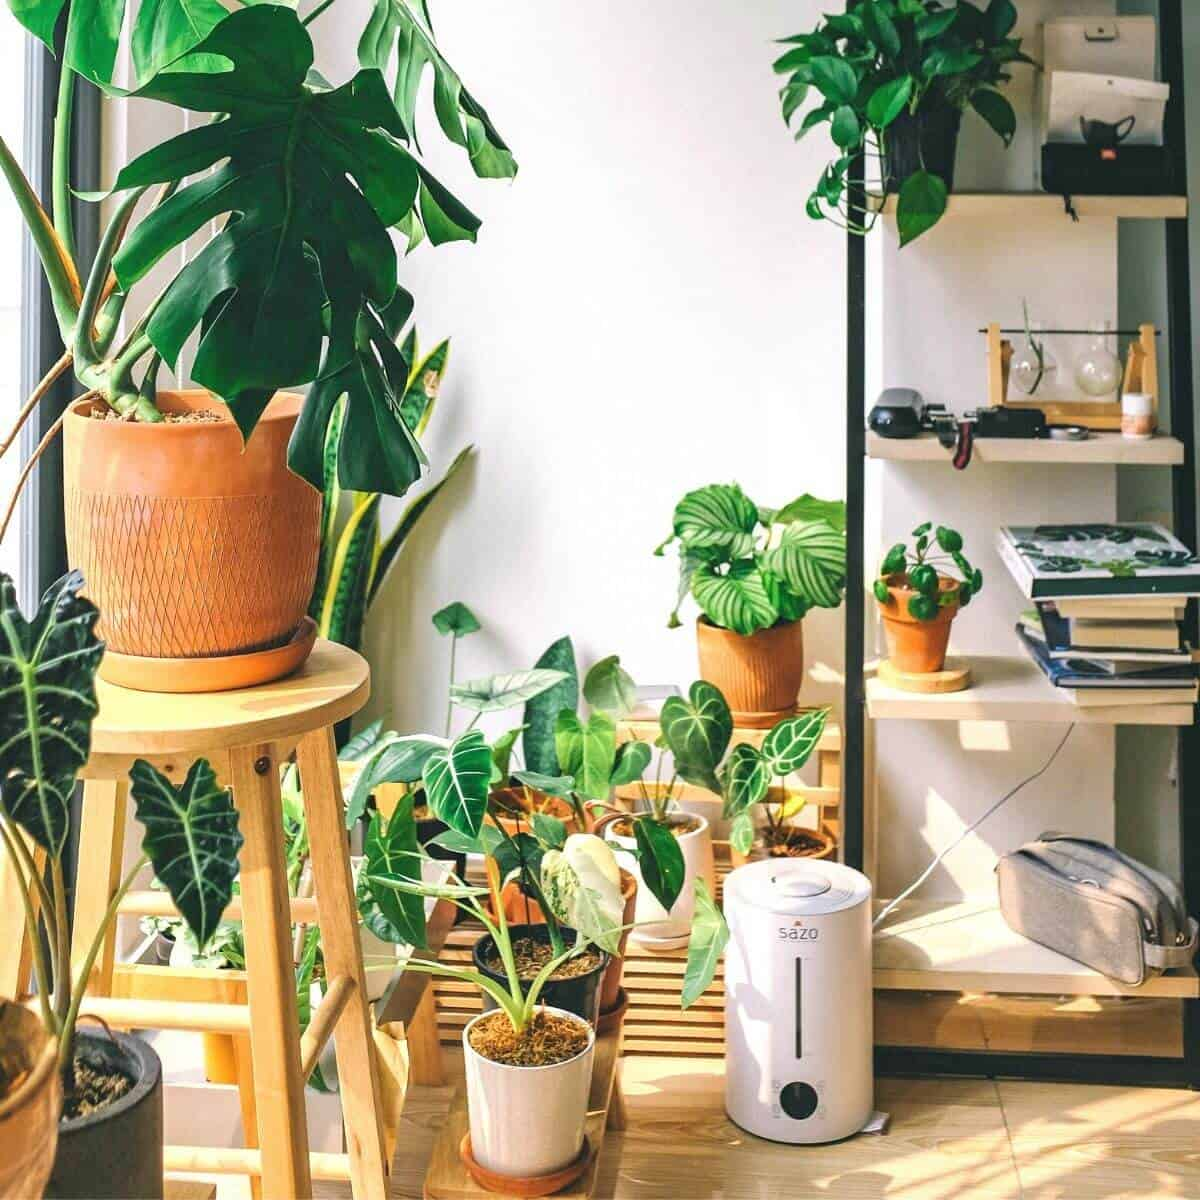 Several houseplants on the ground next to a shelf.